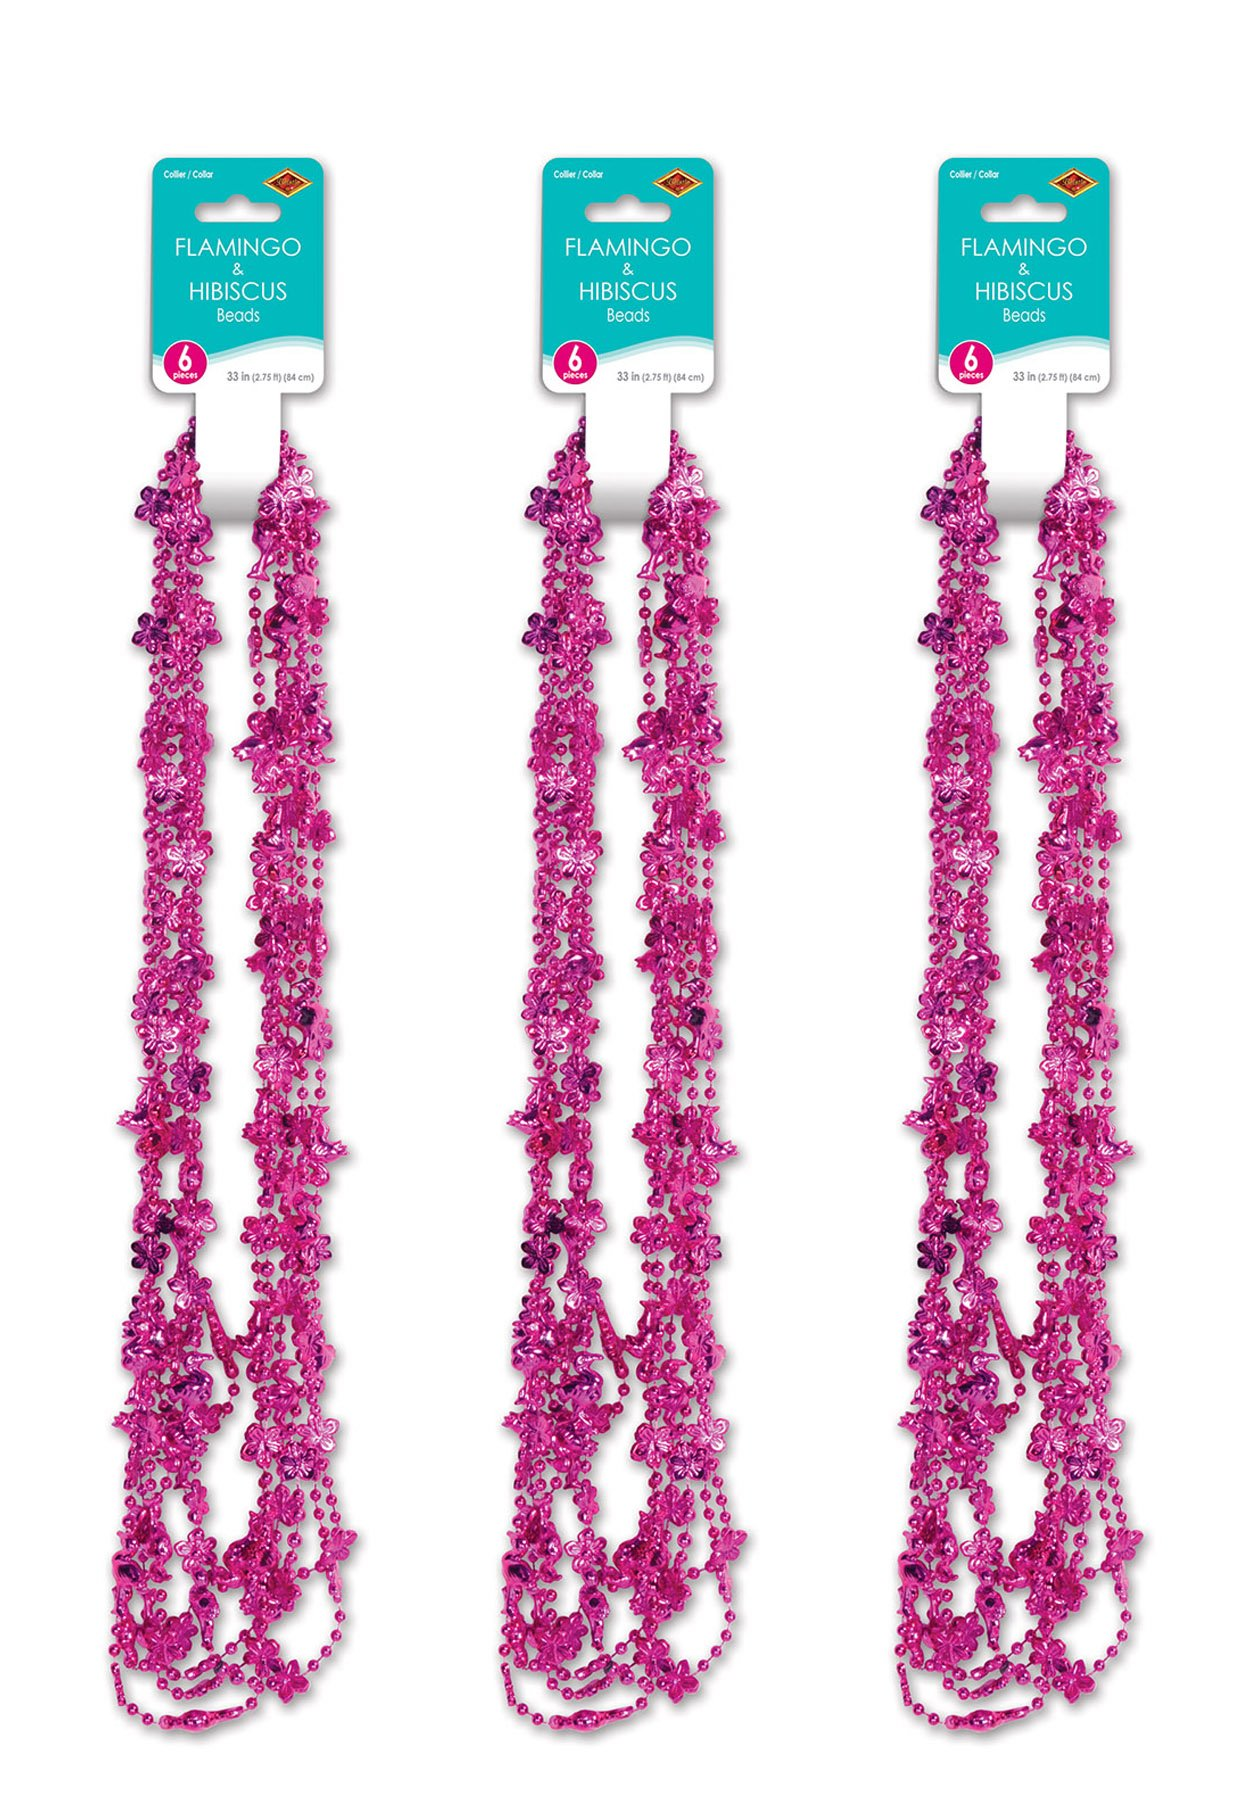 Beistle 52172 18 Piece Flamingo and Hibiscus Party Beads, 33'', Hot Pink